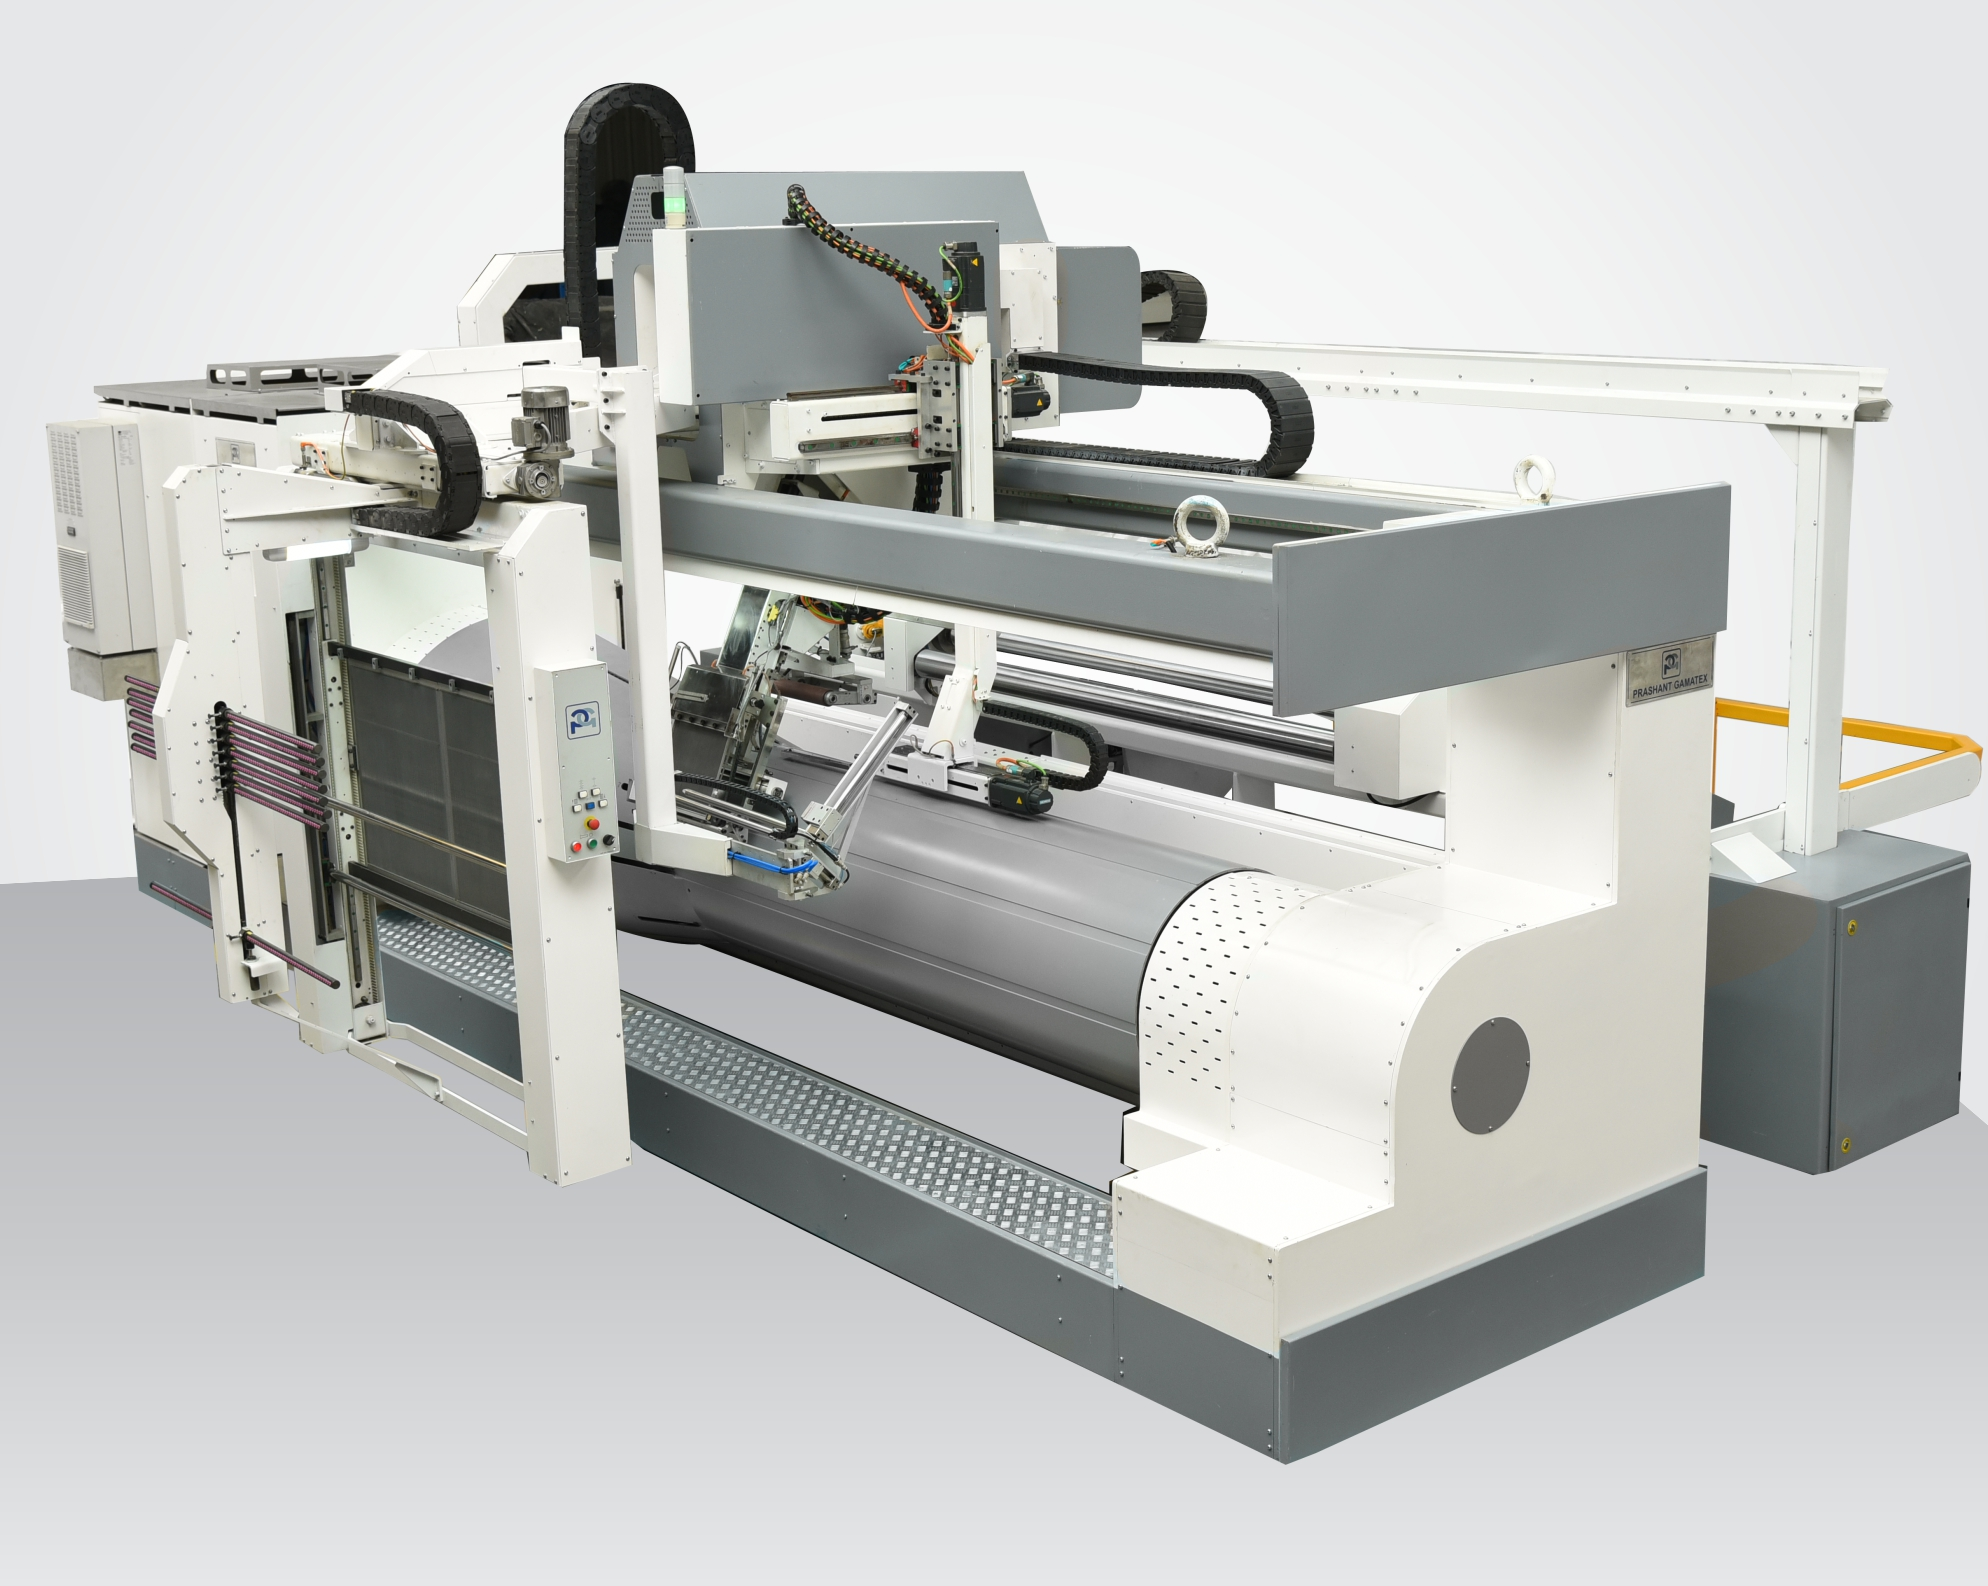 Prashant Group of exhibit top on the line Innovative Robotic Sectional Warping in ITMA